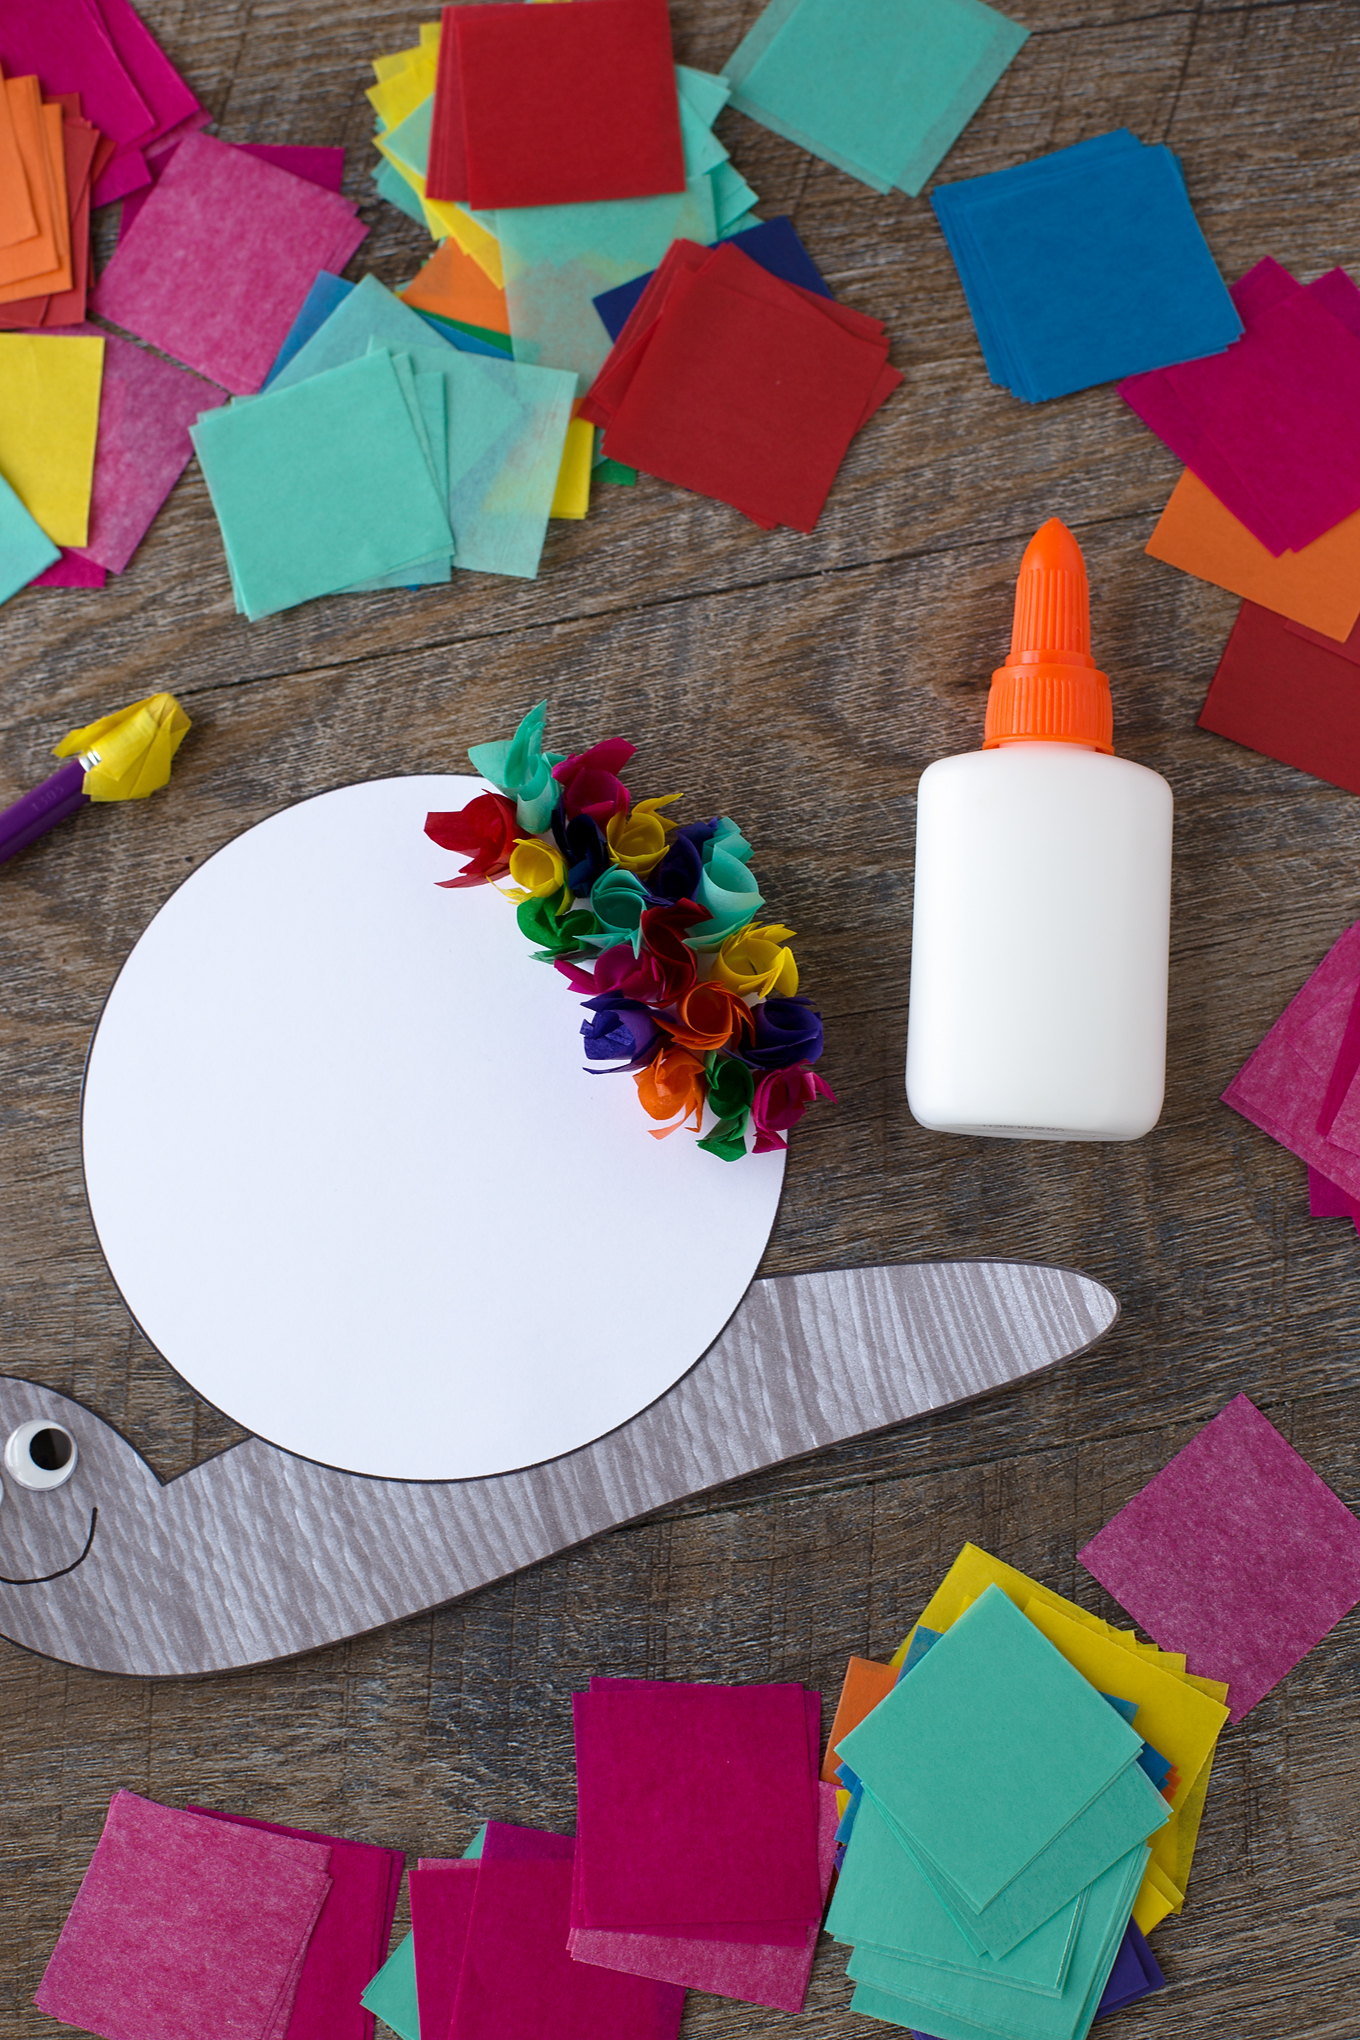 Kids of all ages will enjoy this colorful Tissue Paper Snail Craft. Perfect for kids who are working on developing fine-motor skills or who love animals.